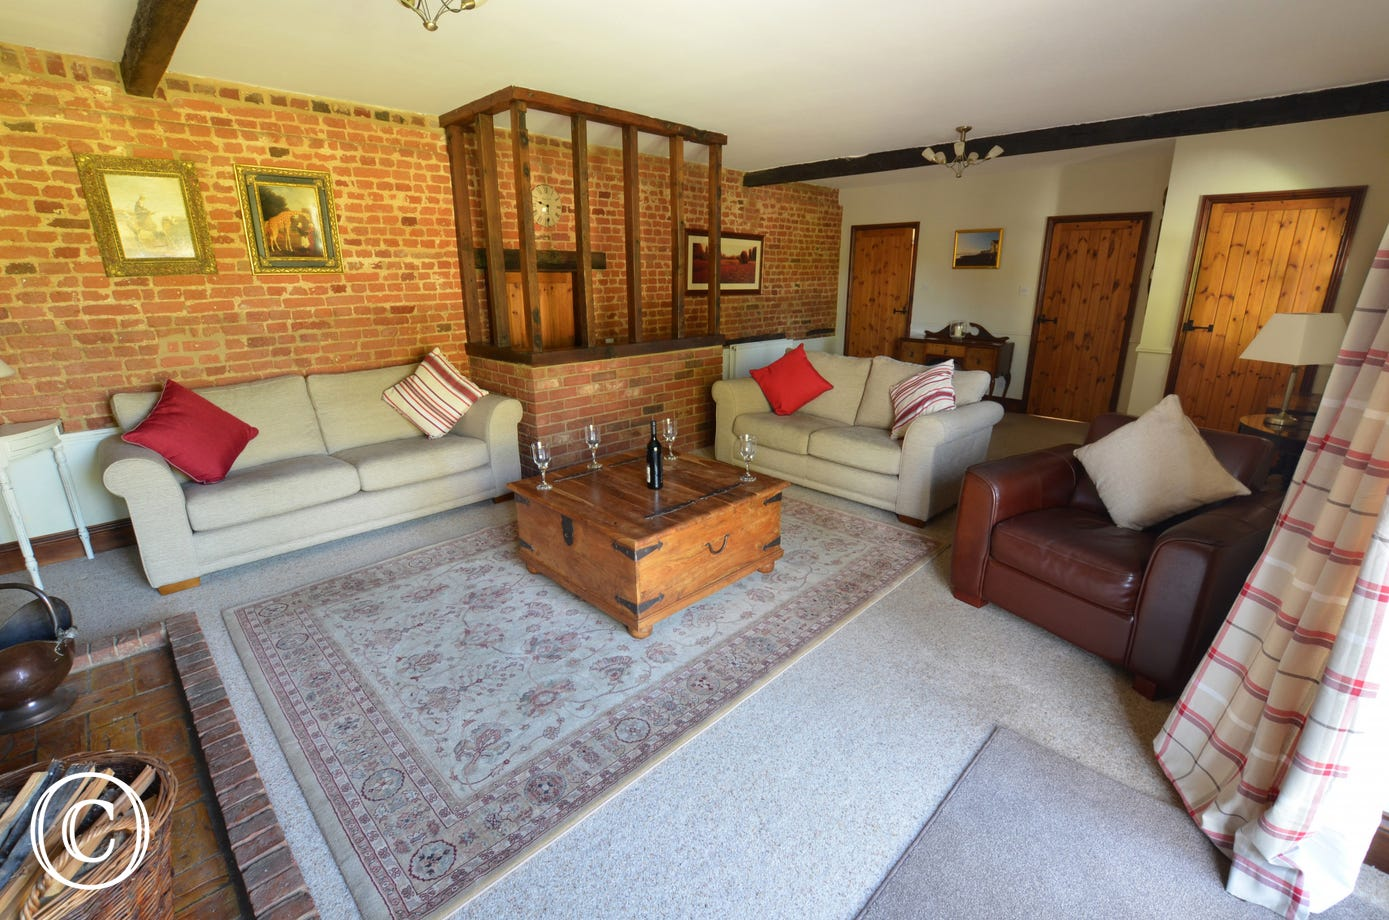 This shows the comfortable seating, original feature exposed brick work and traditional internal doors